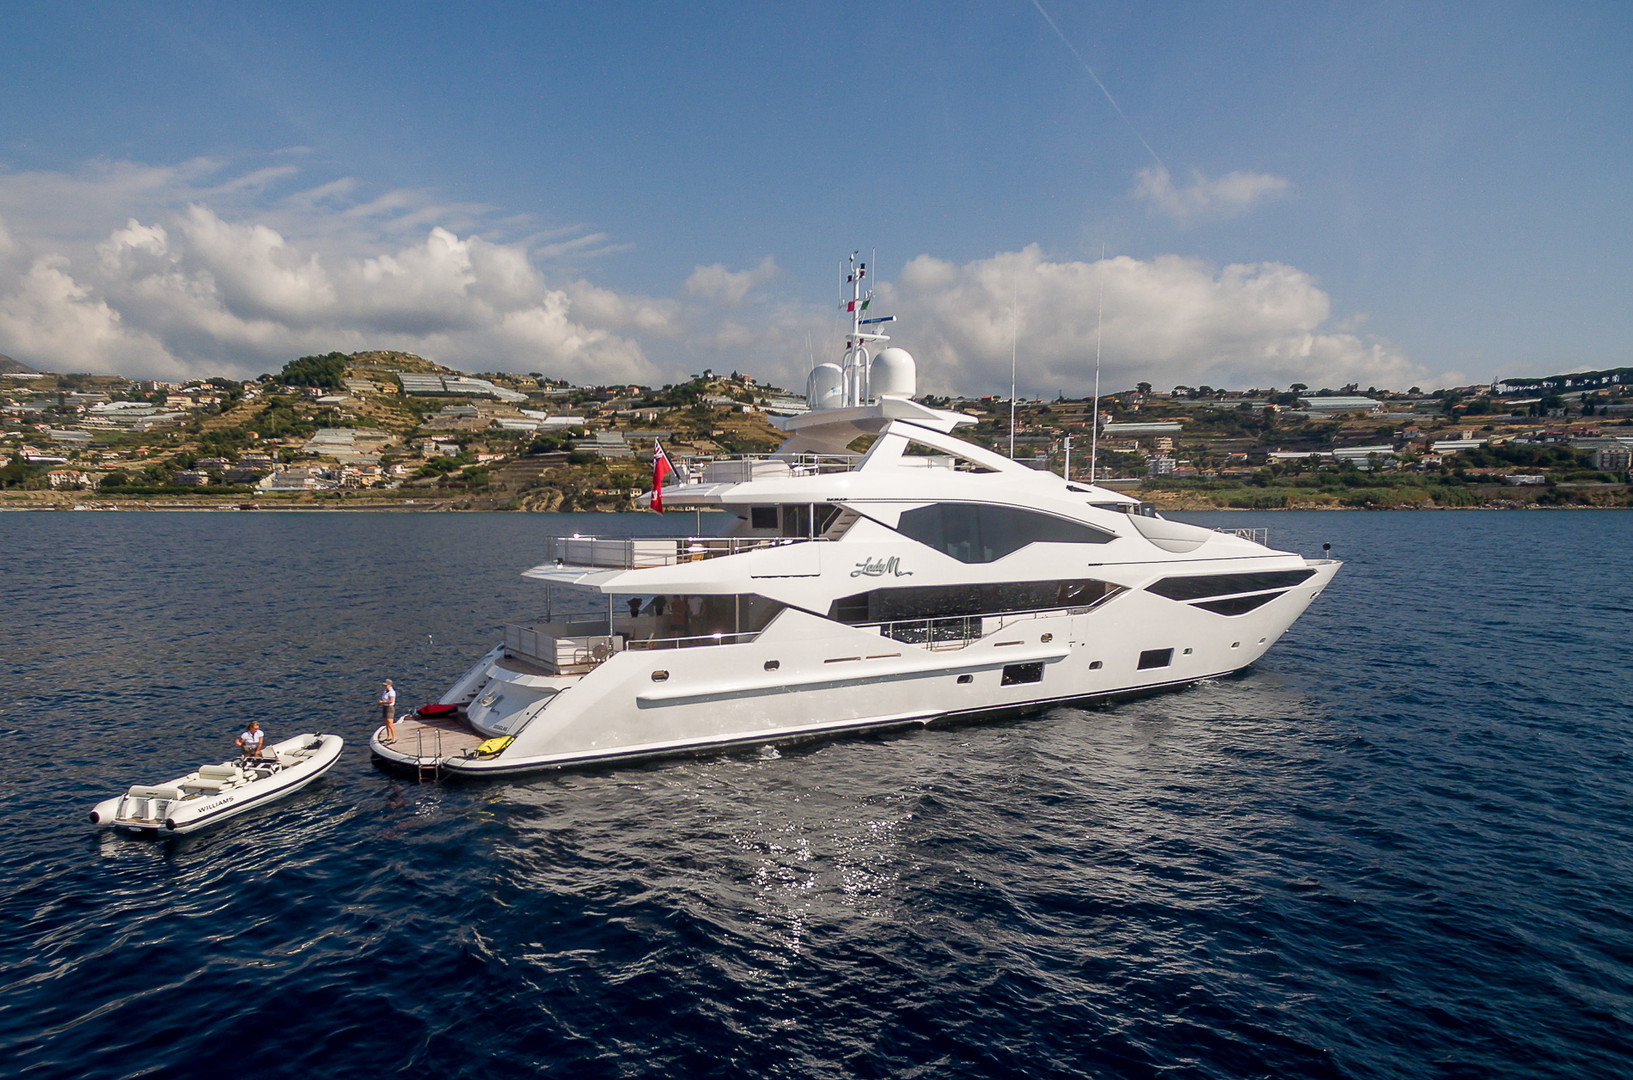 Yacht LADY M - on charter